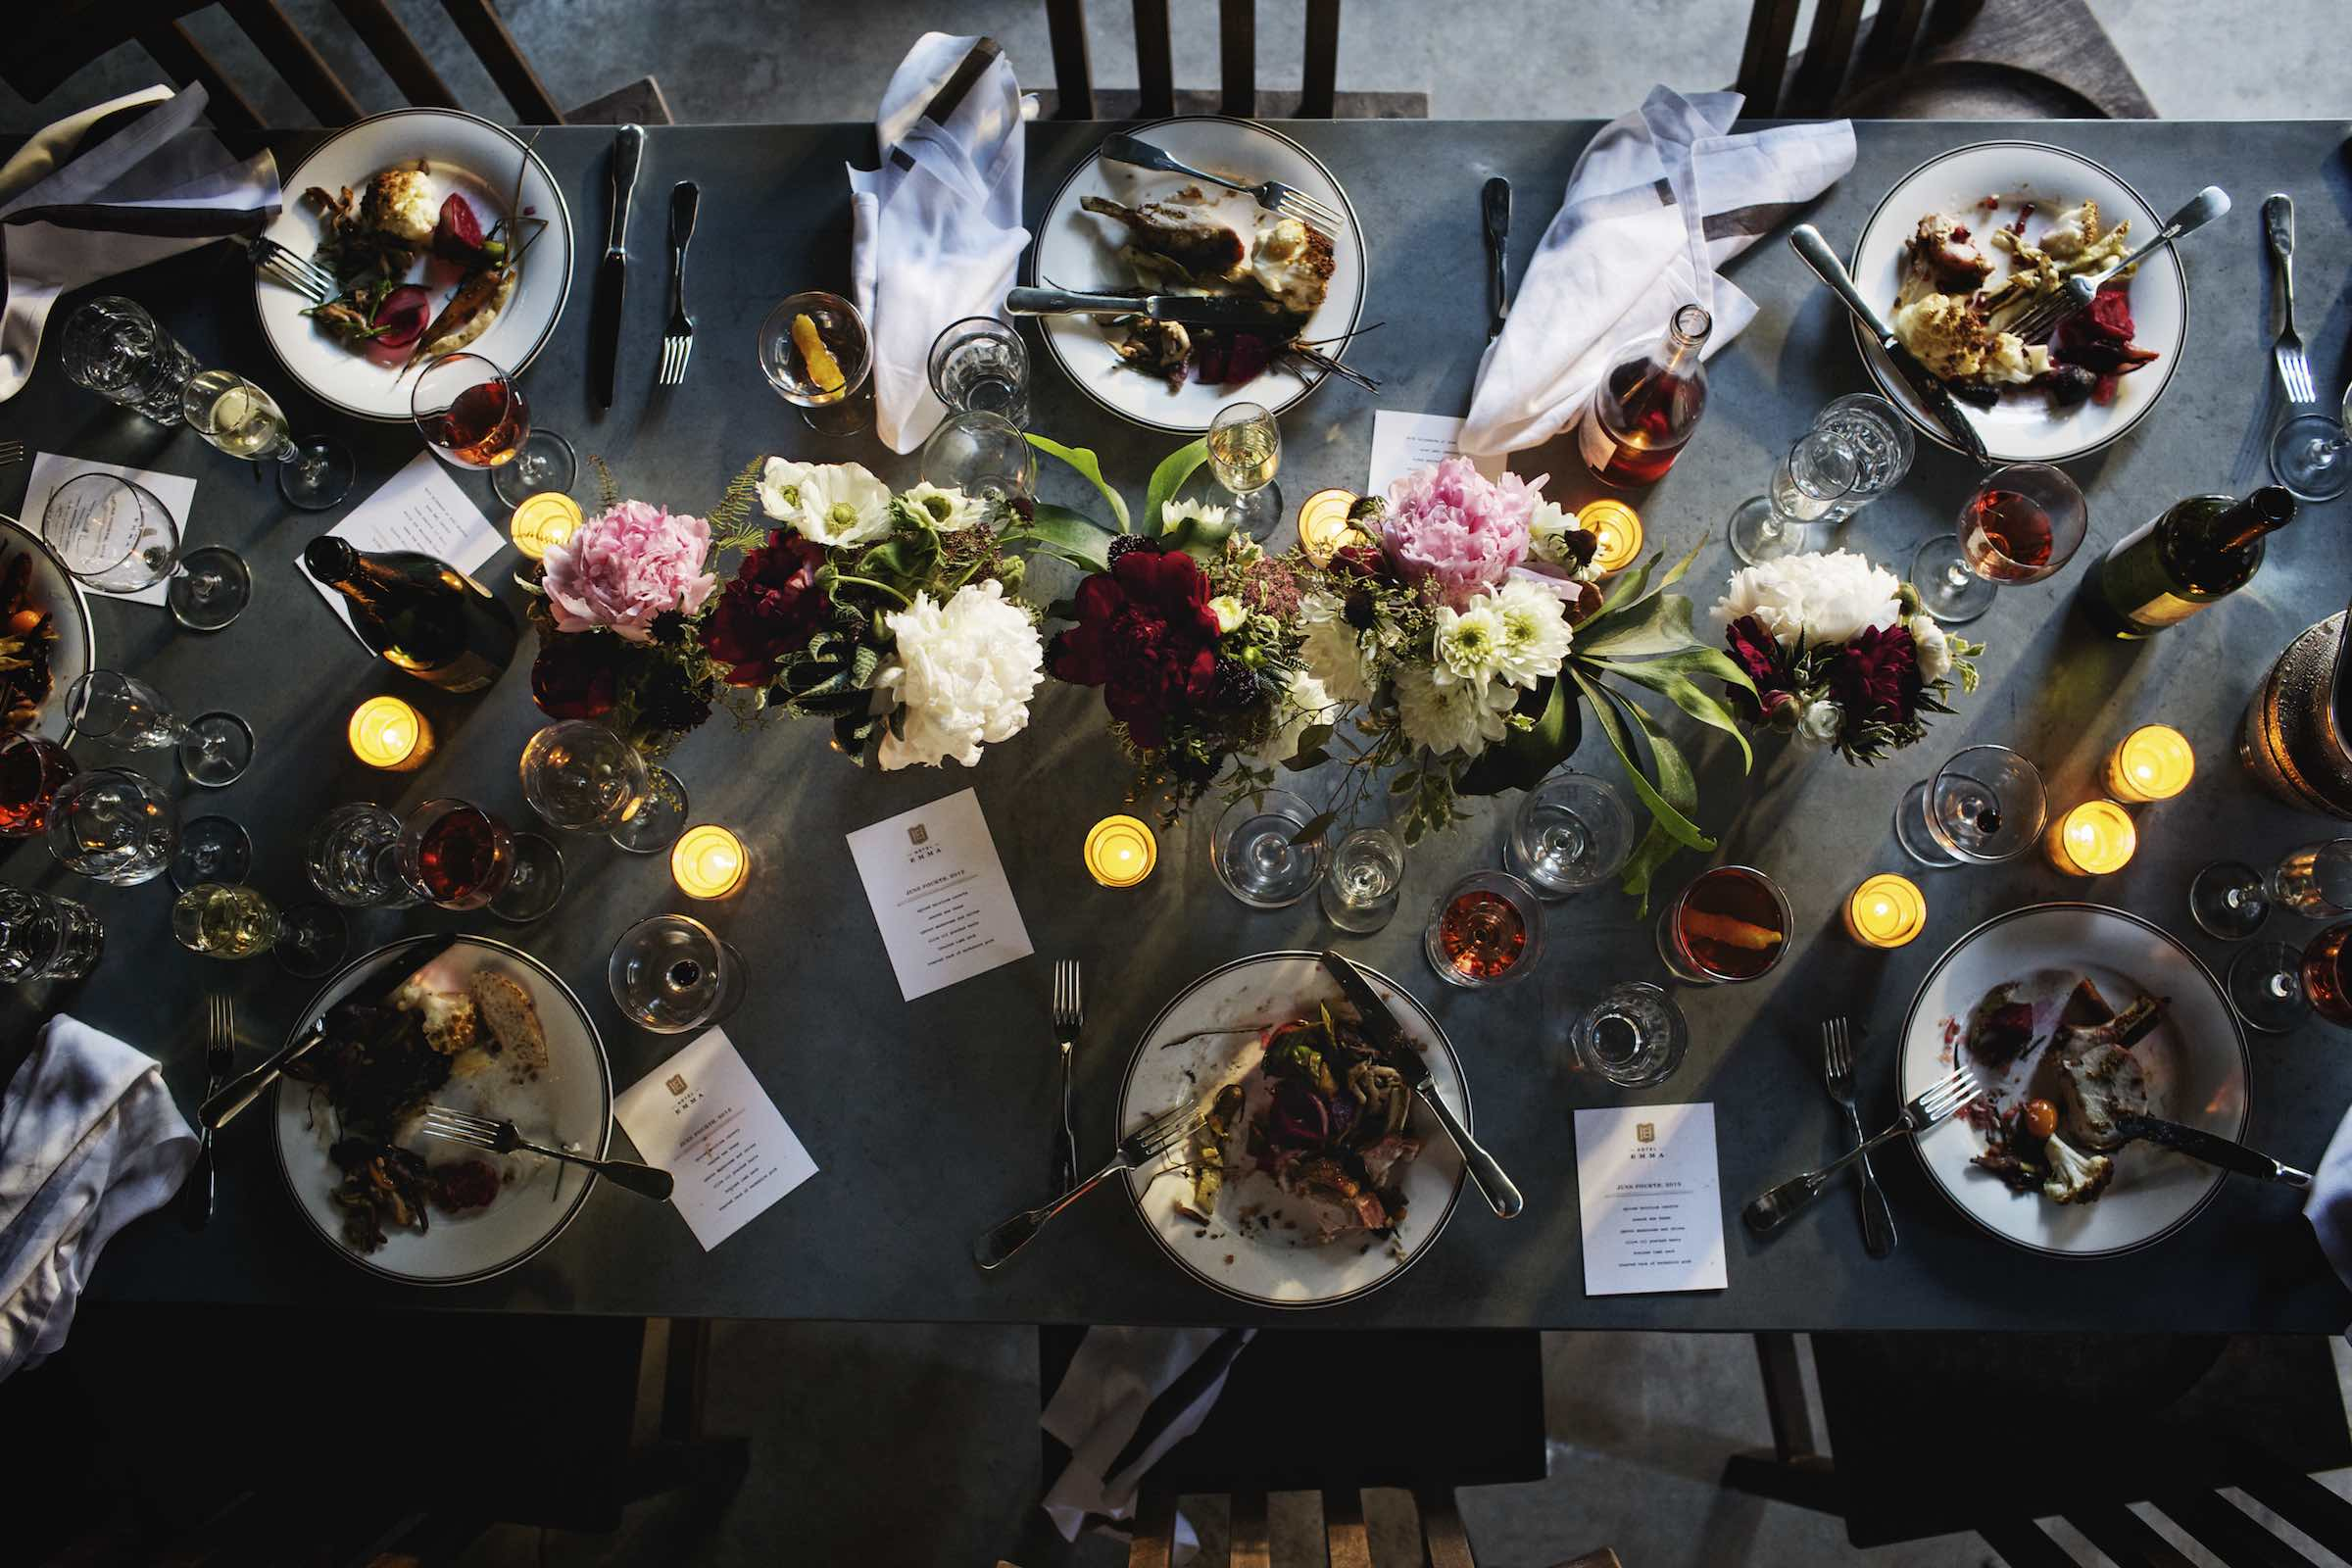 Jody Horton Photography - Unsupervised dinner spread on a stone table.